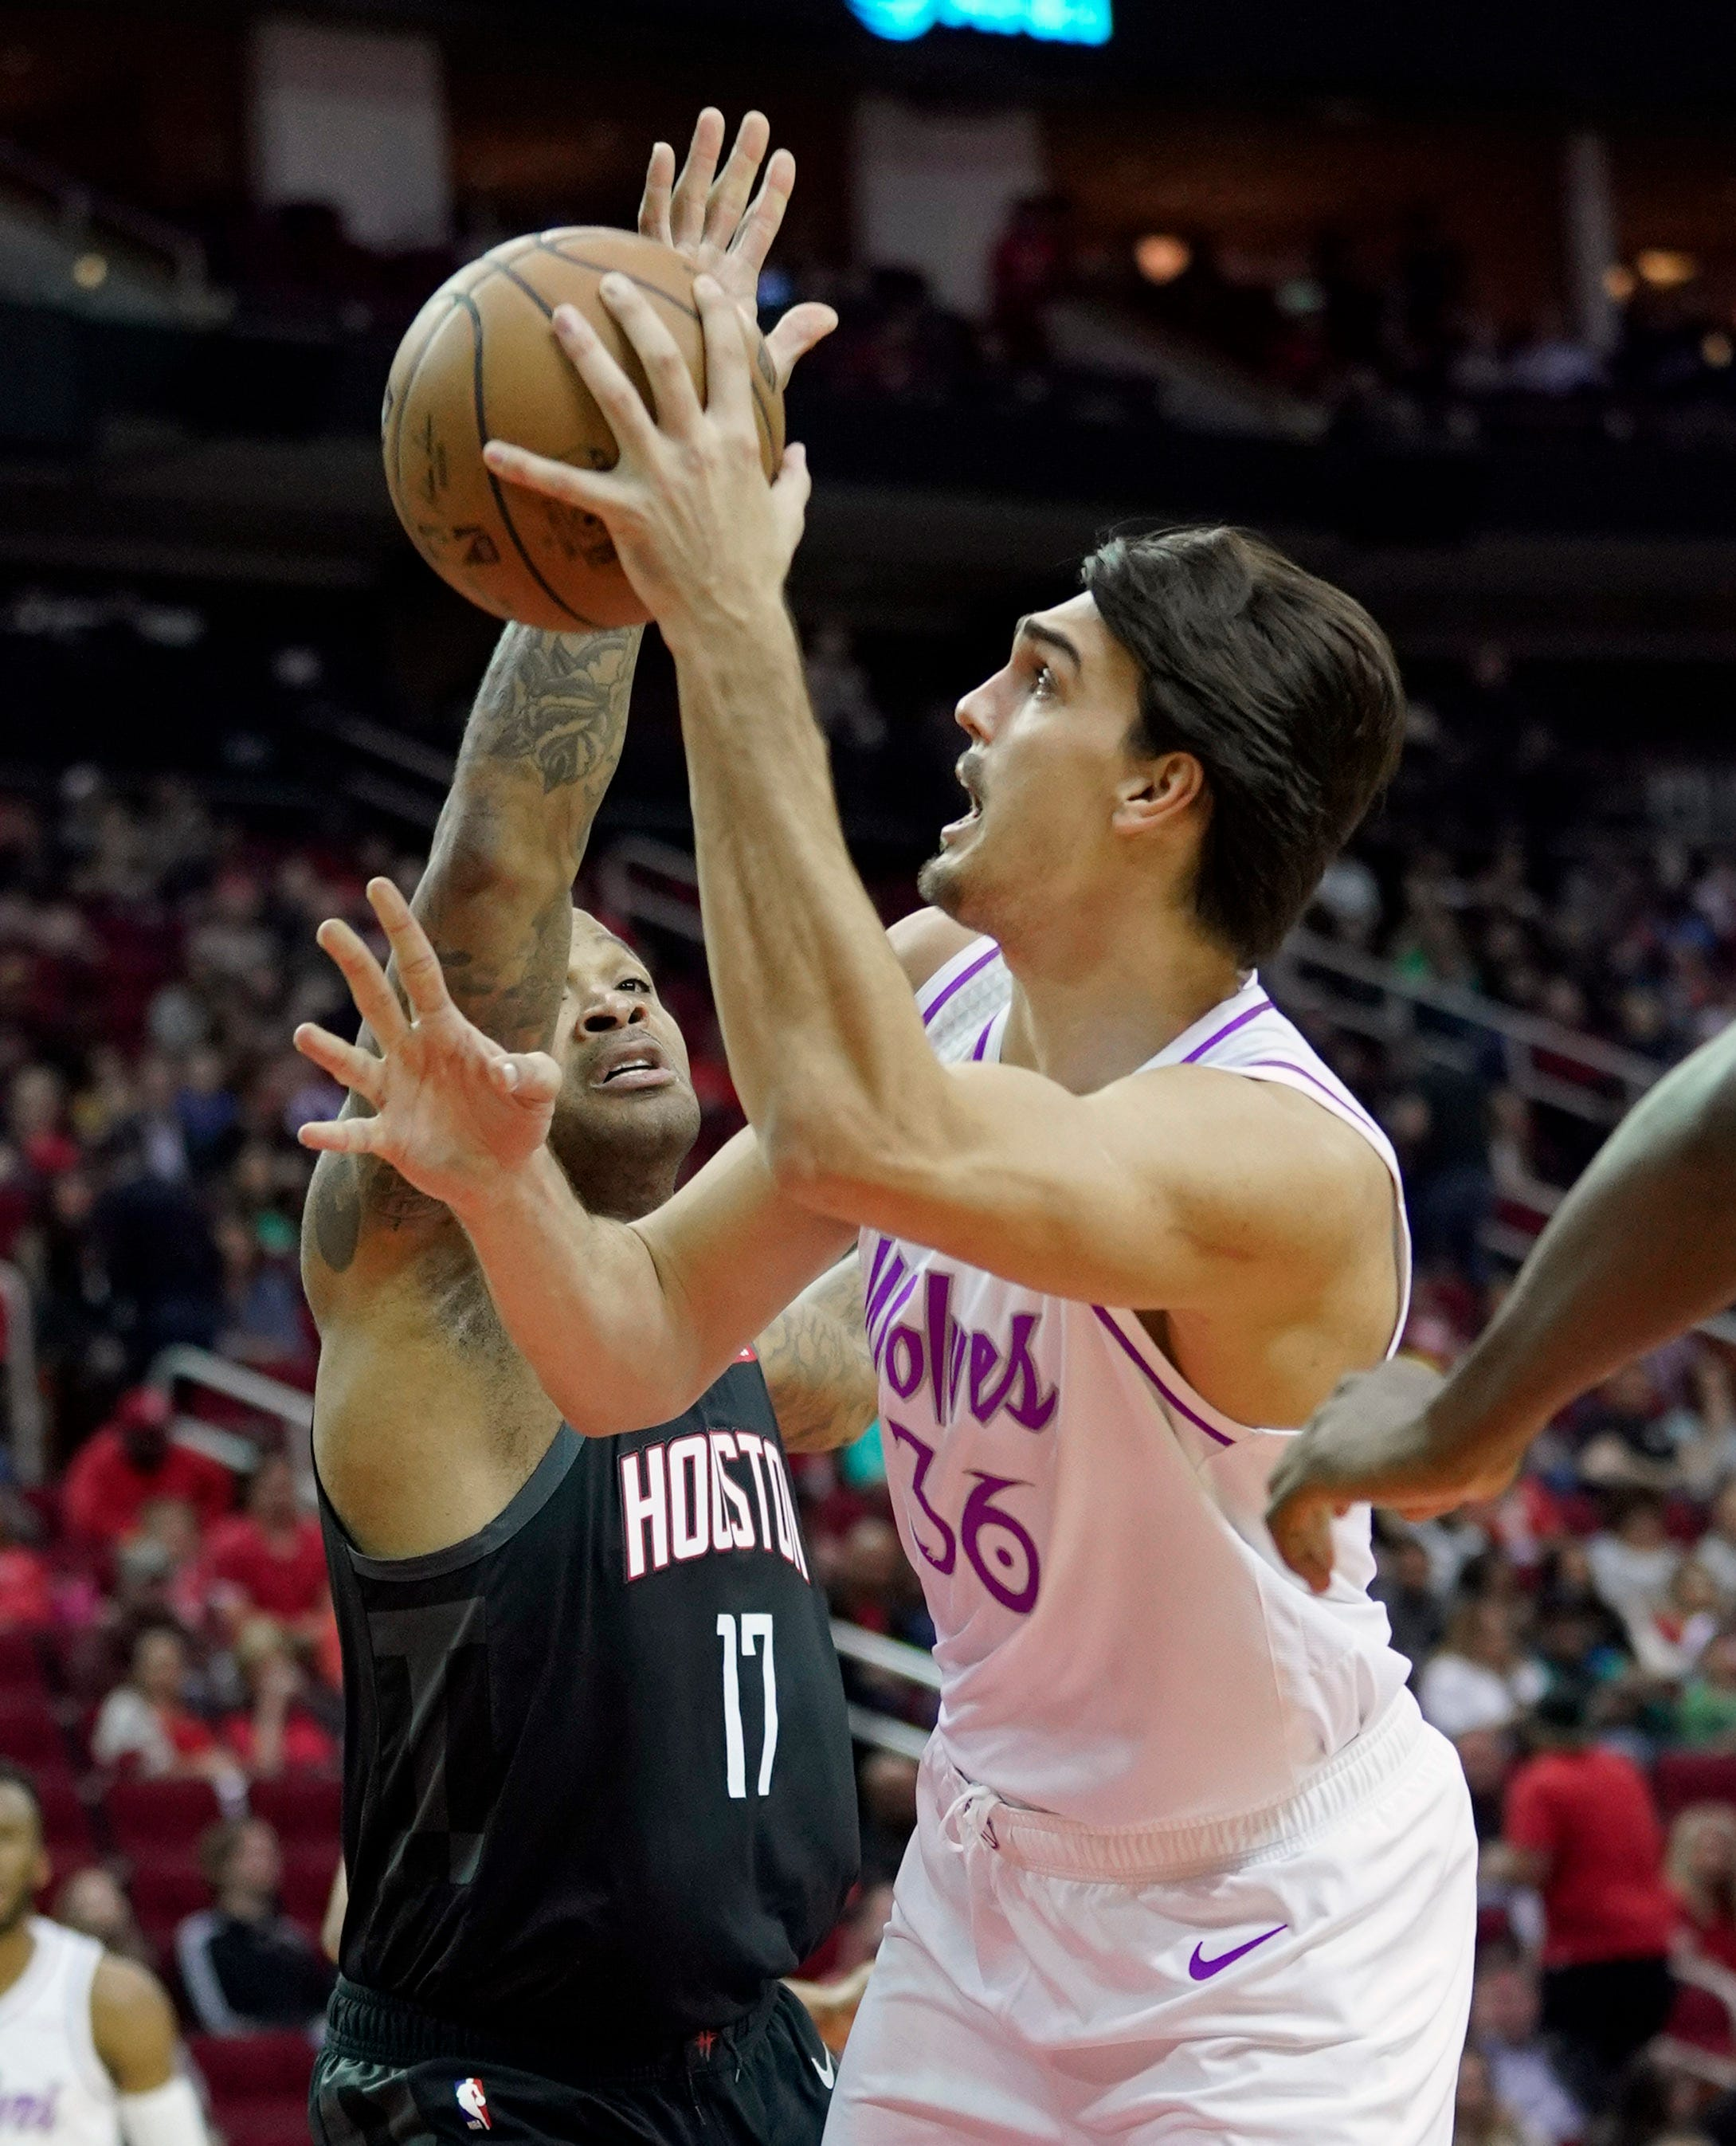 Houston Rockets 3rd Quarter Stats: Paul Scores 25 To Lead Rockets Over Wolves 117-102